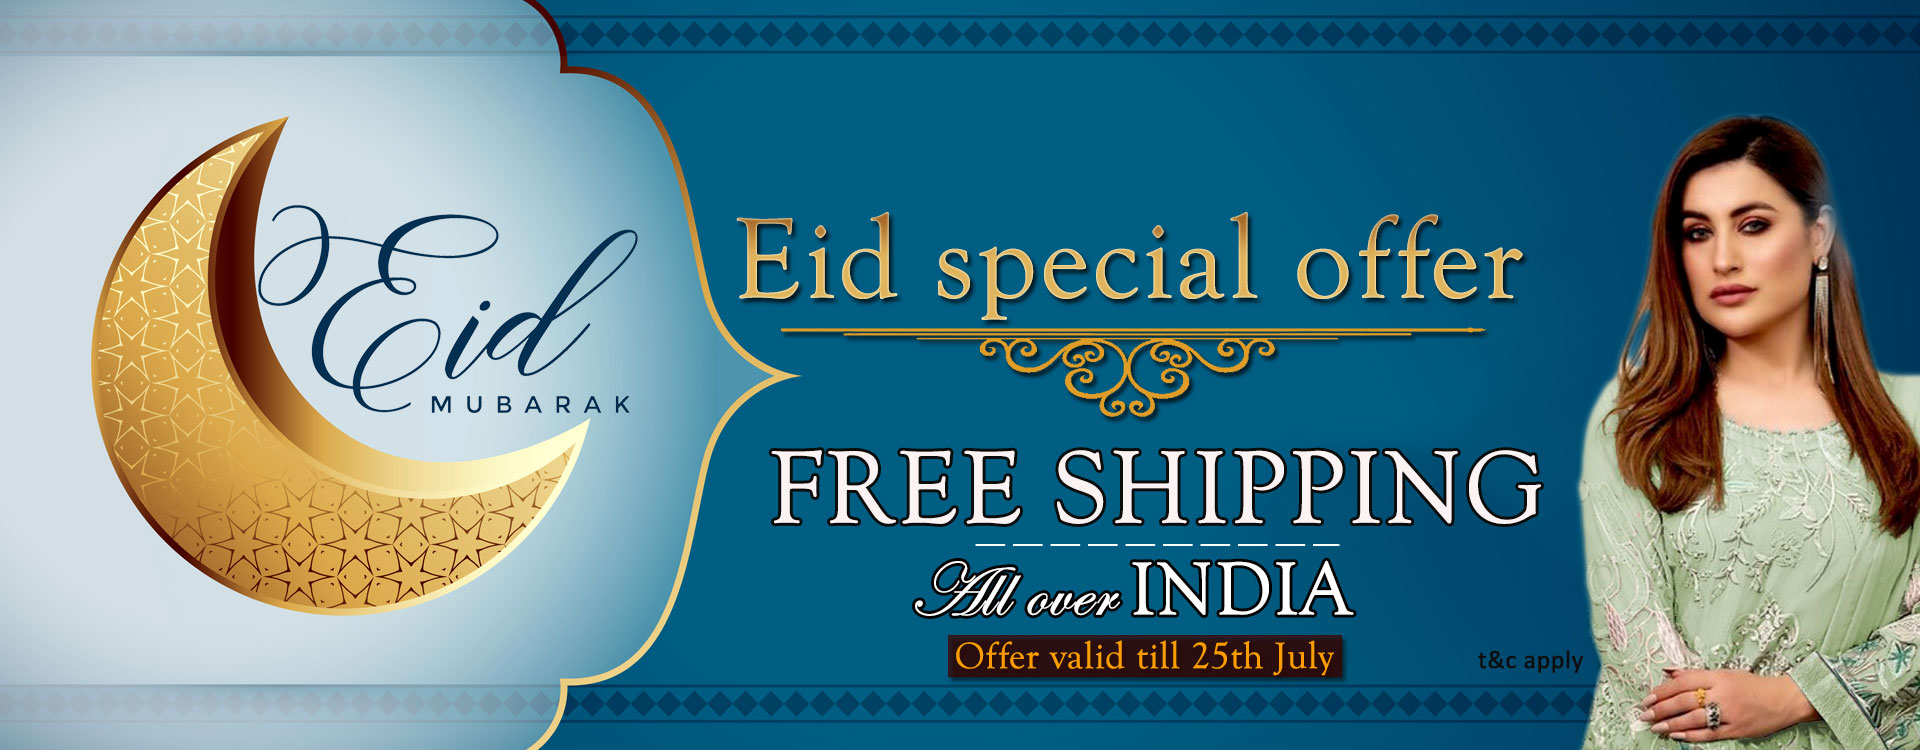 eid special offer free shipping all over india